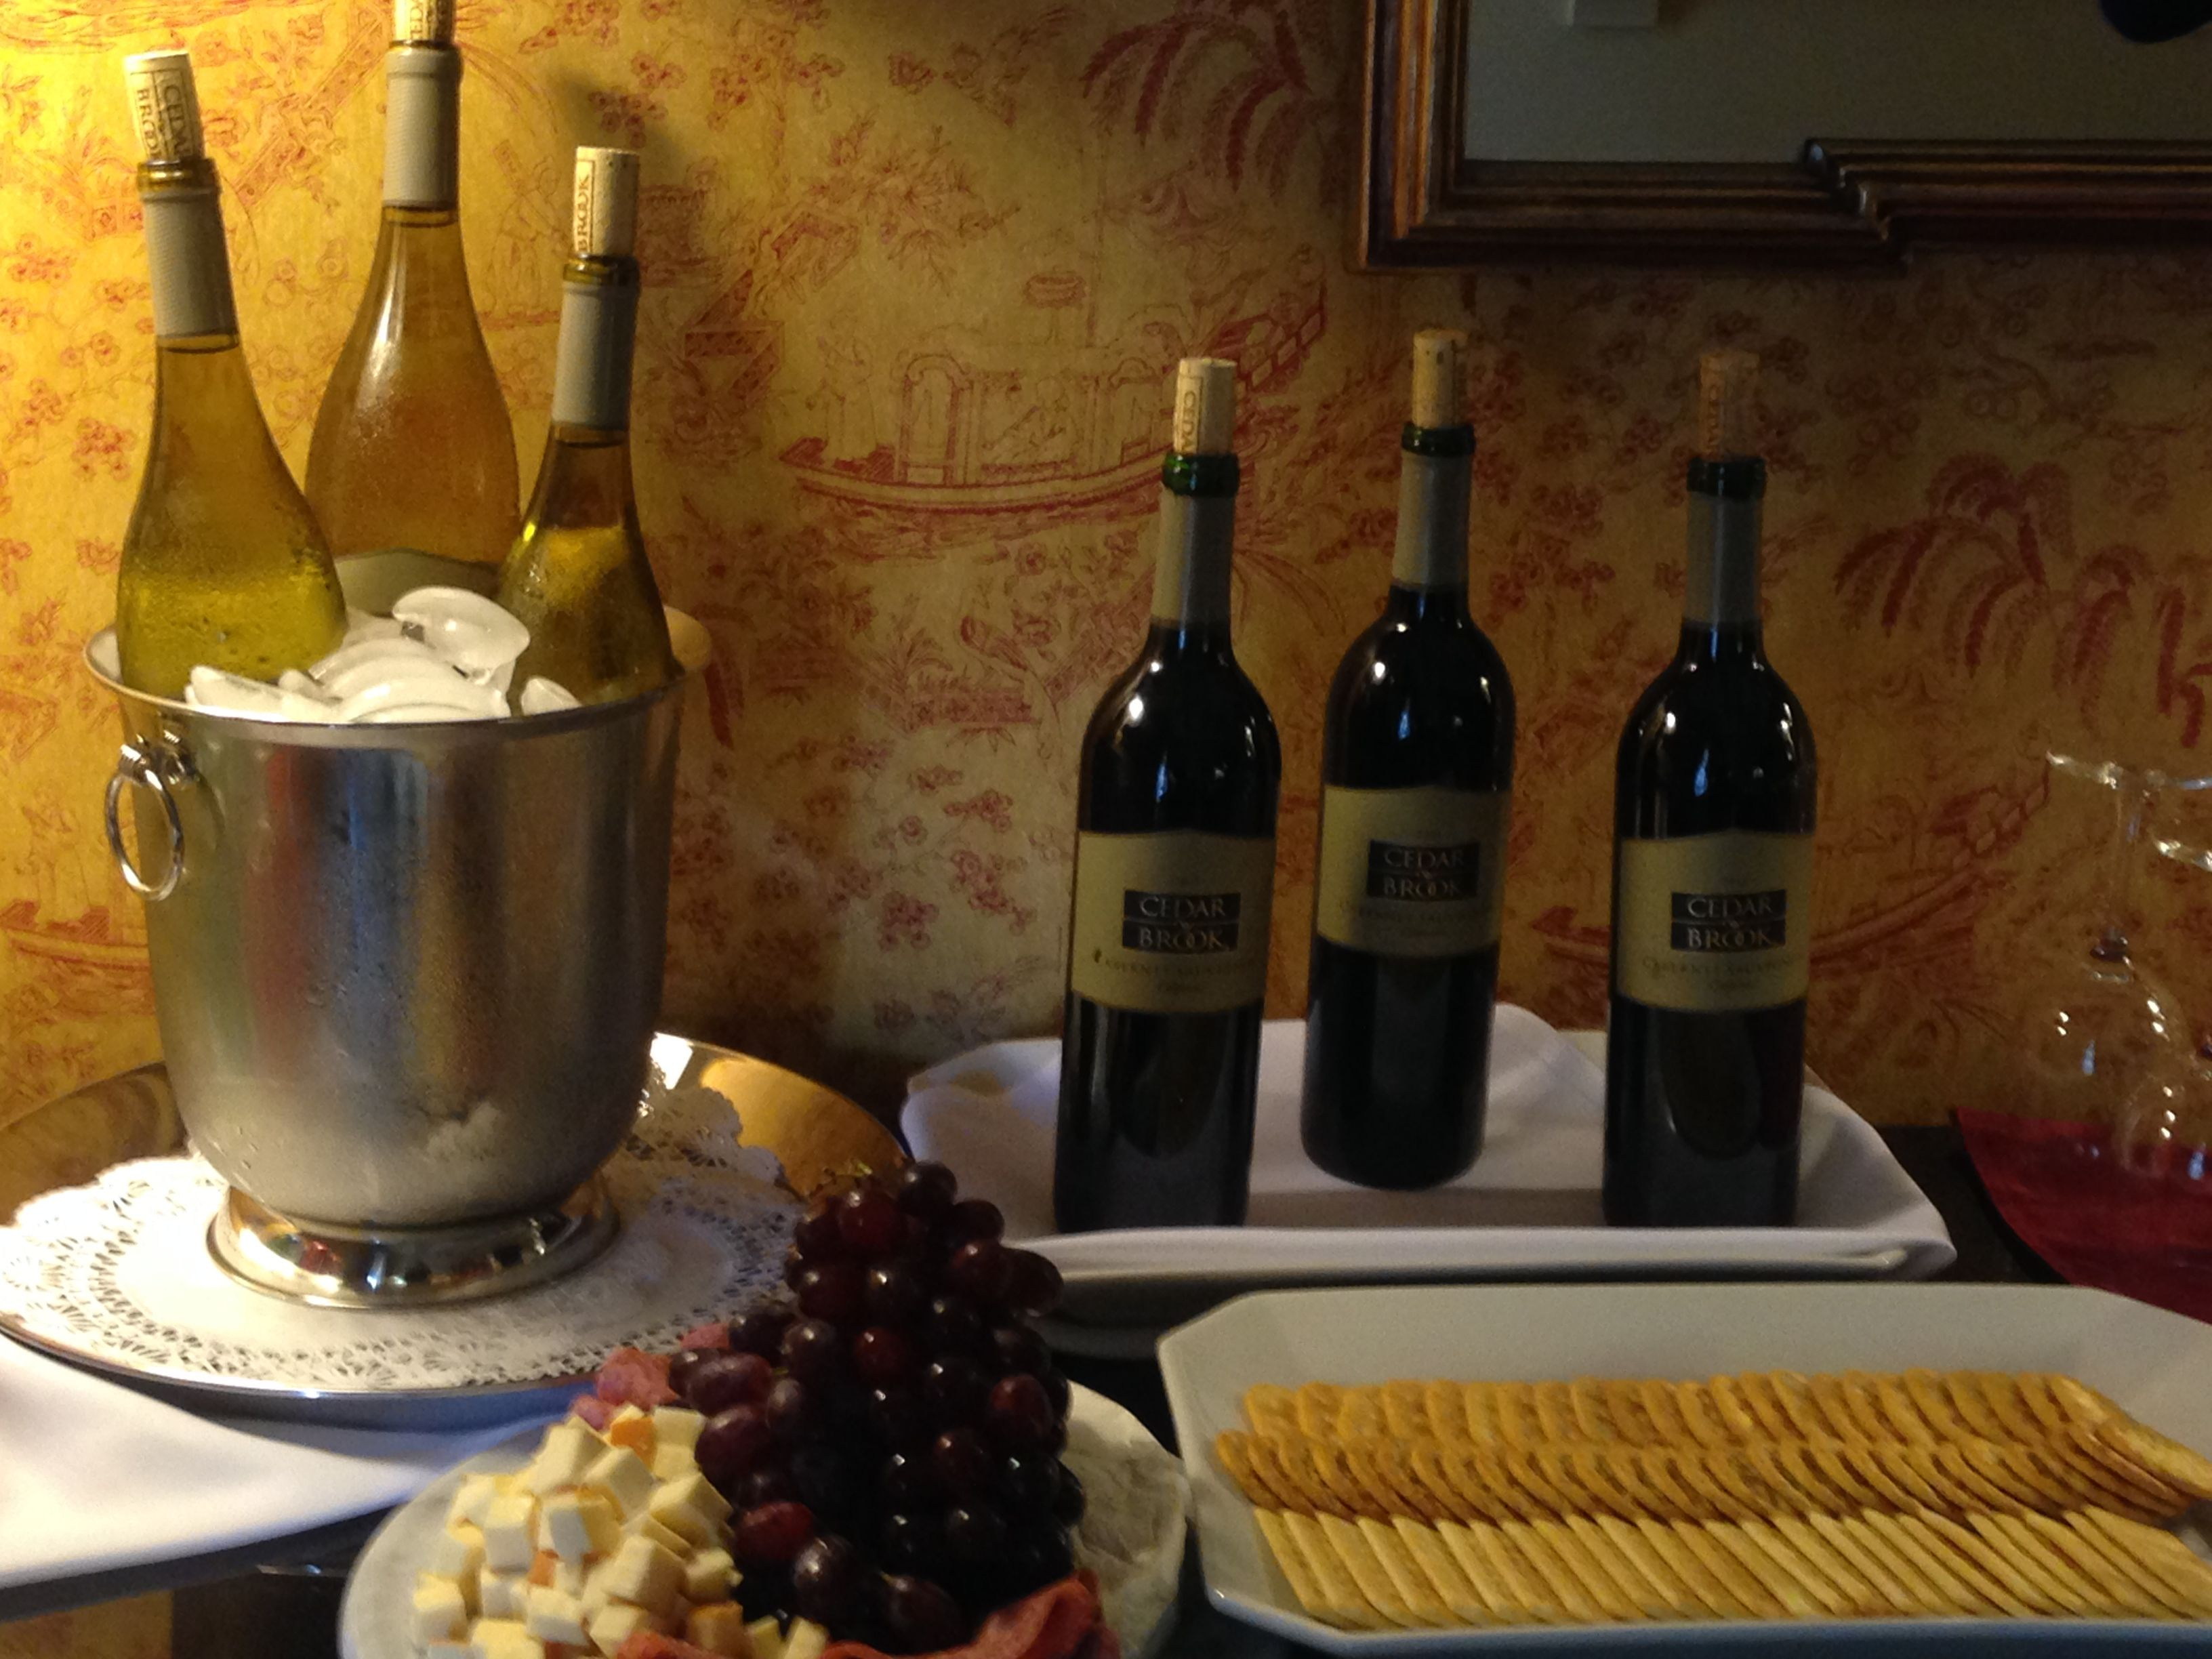 Mingle with your fellow guests and share travel stories as you sip on your favorite wine at our complimentary Evening Wine Hour!